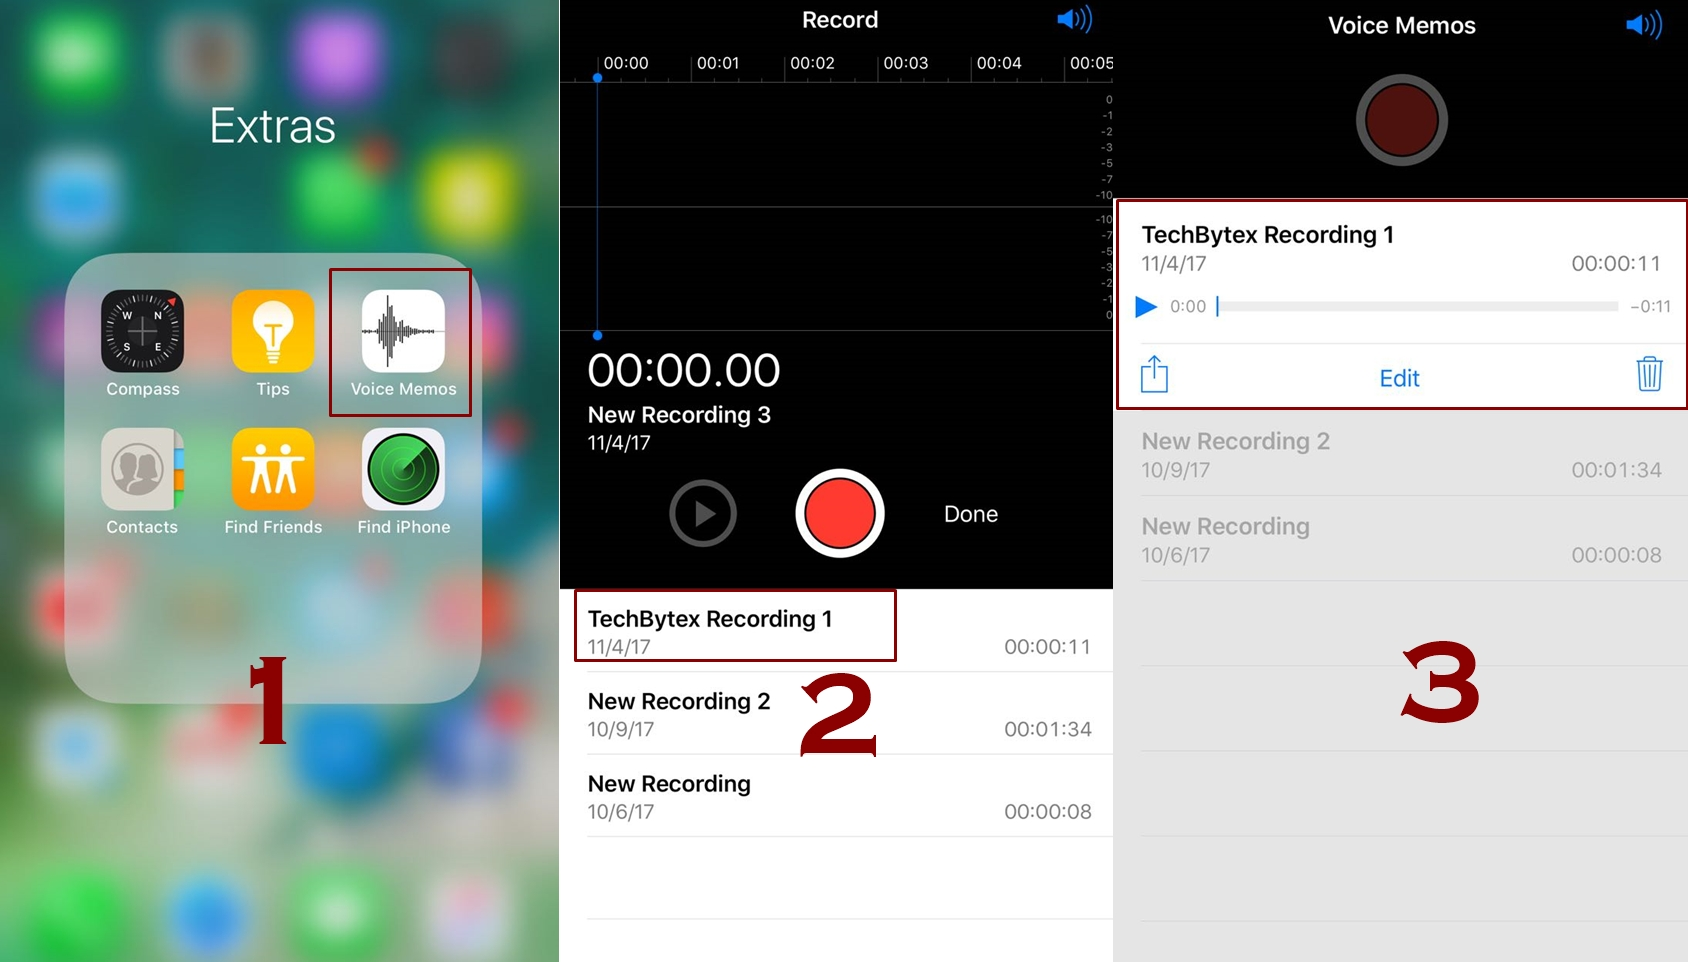 how to listen voice memos in iphone - How to use and record voice memos in iPhone